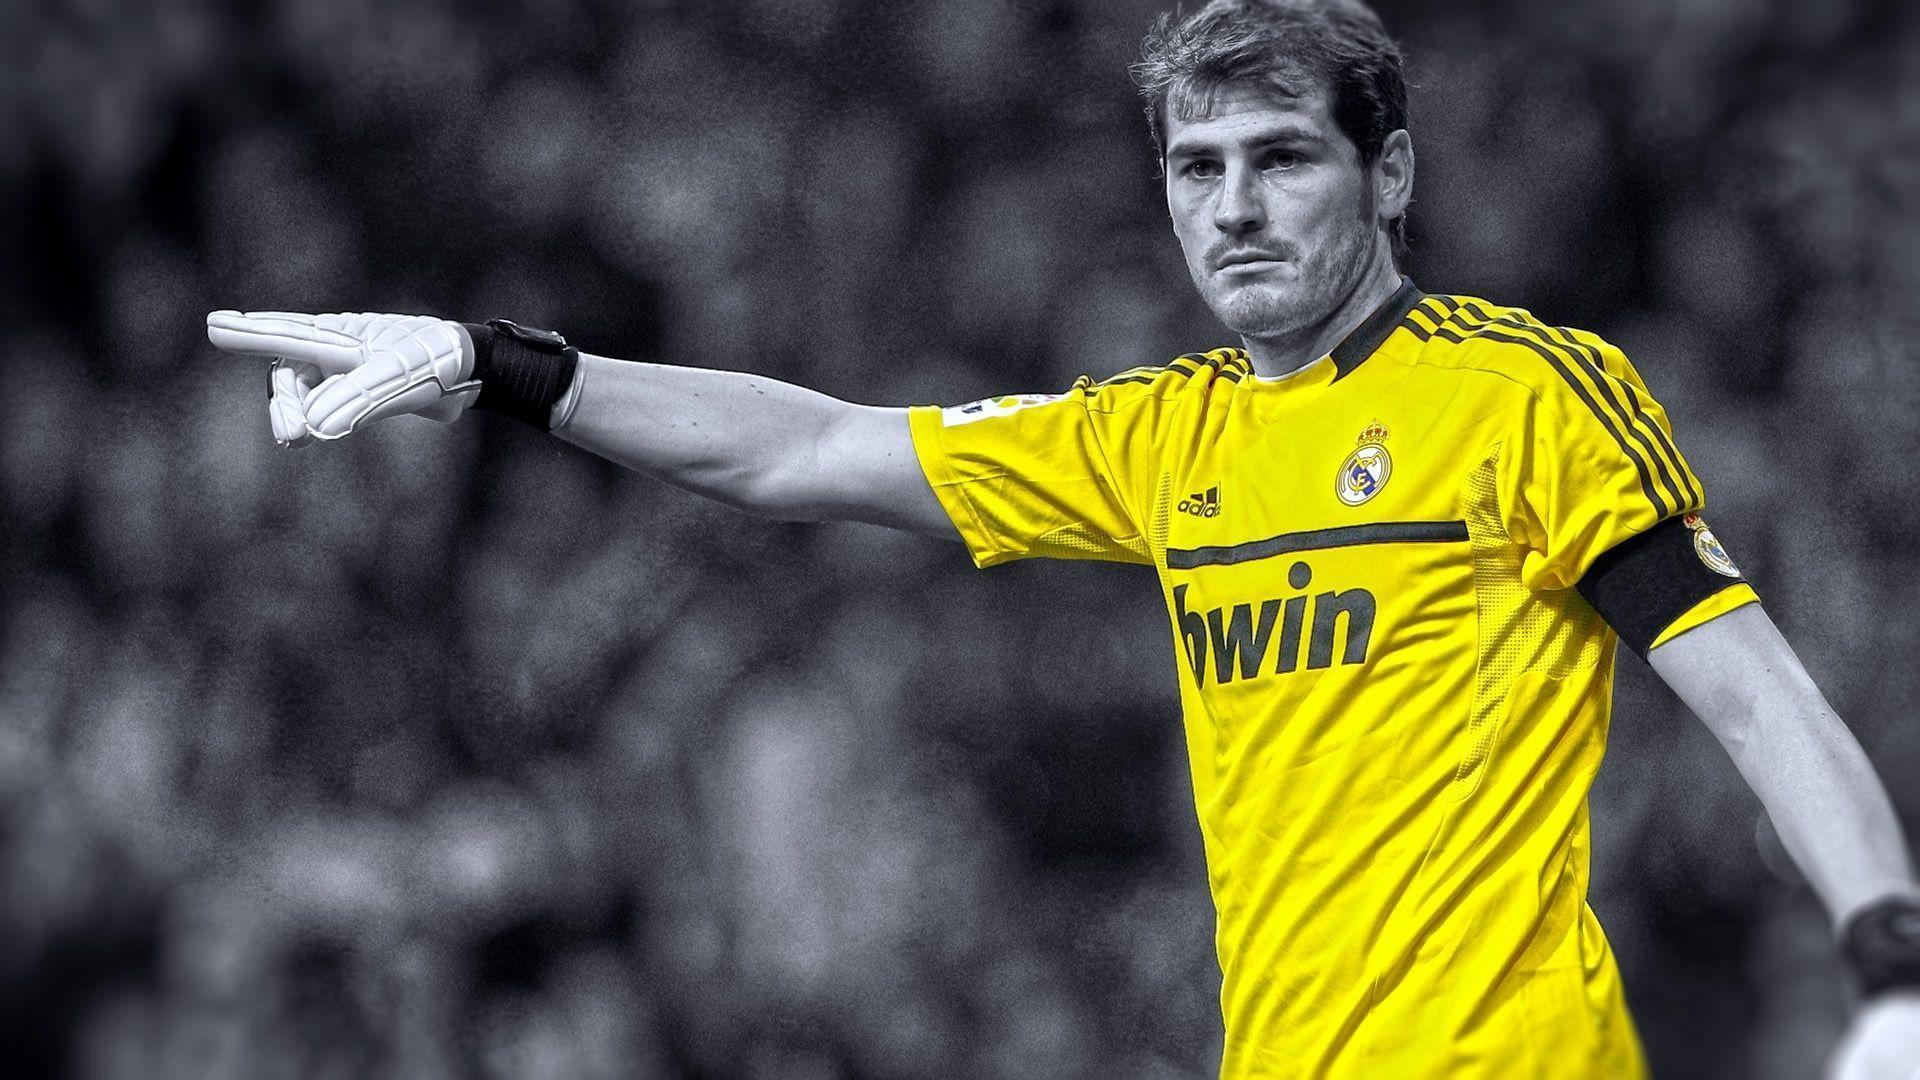 iker casillas wallpaper 2014 | Desktop Backgrounds for Free HD ...